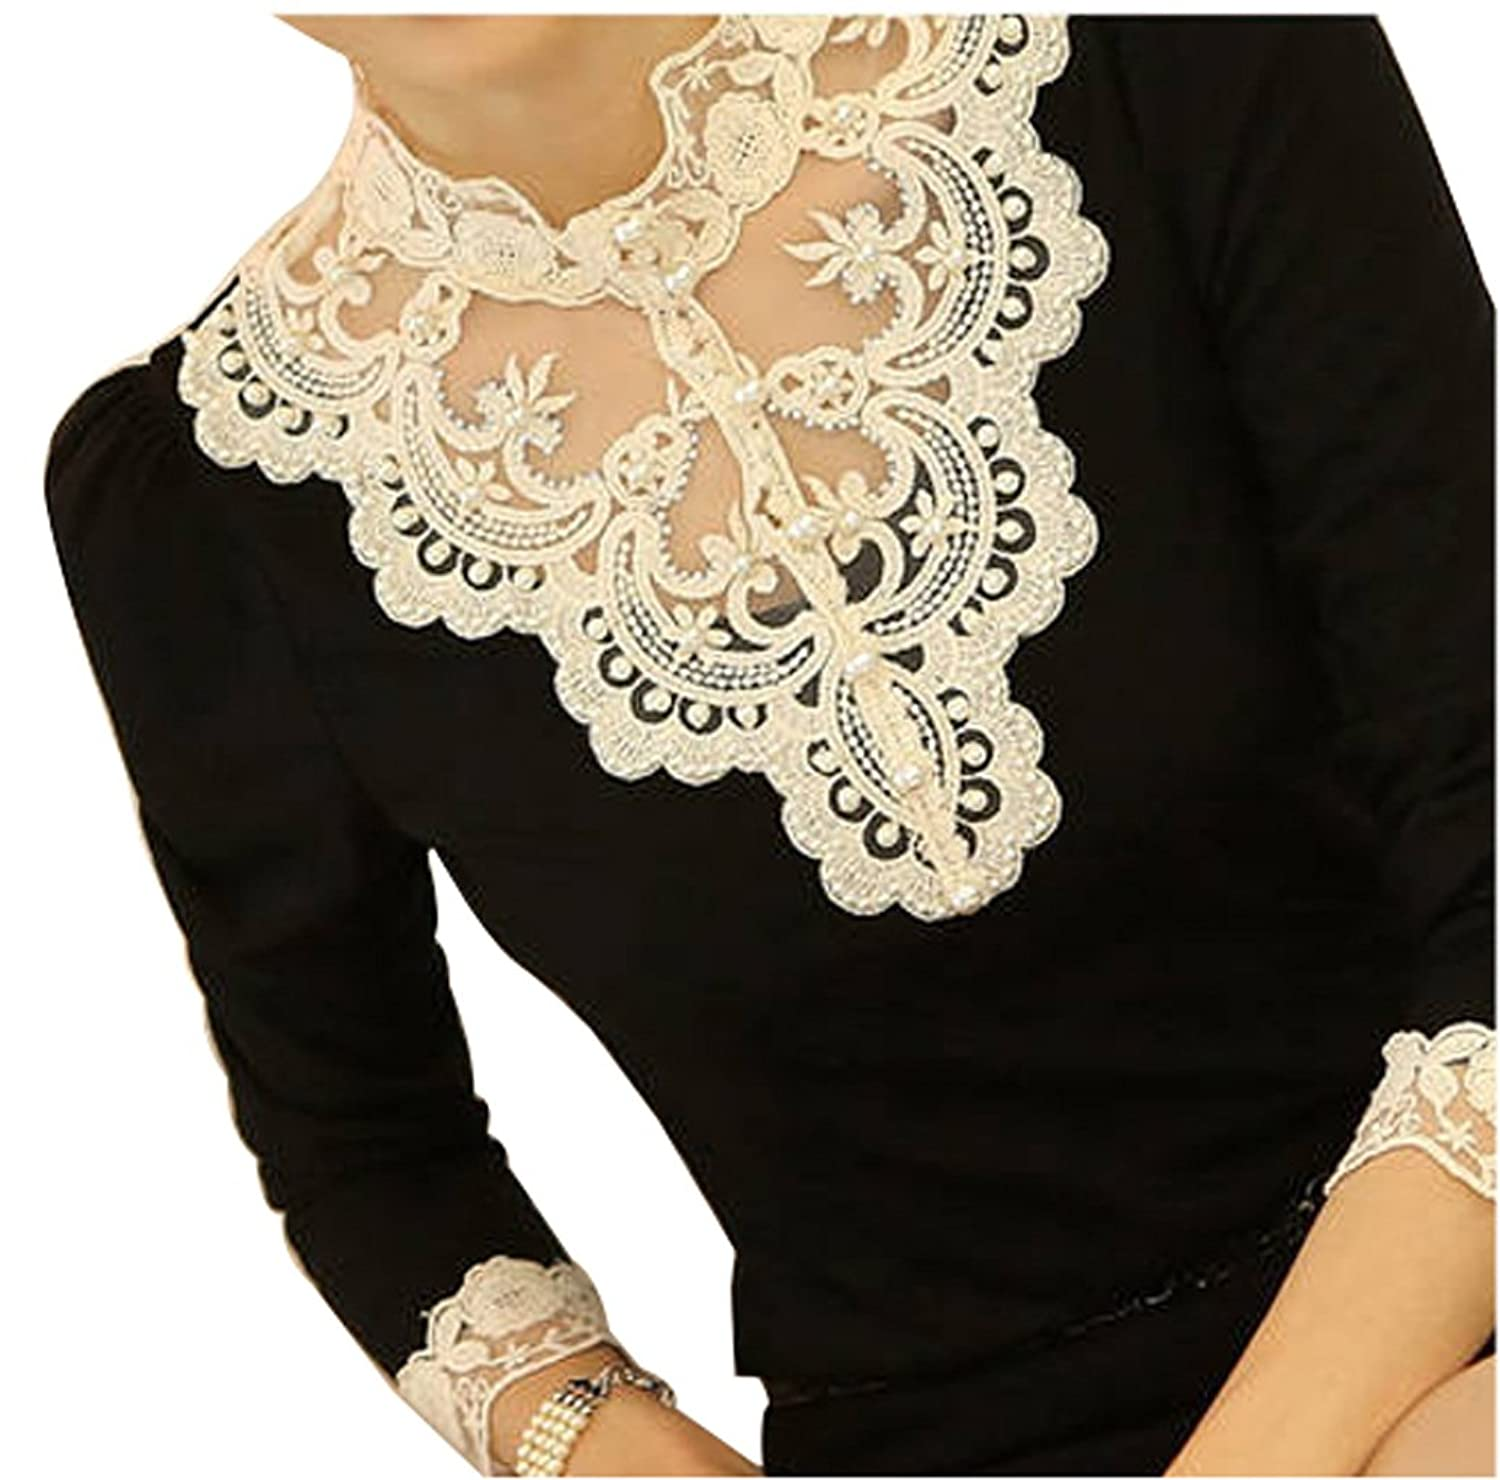 VOBAGA Women's Lace Spliced Shirt Long Sleeve Stand Collar Tops Blouse at Amazon Women�s Clothing store